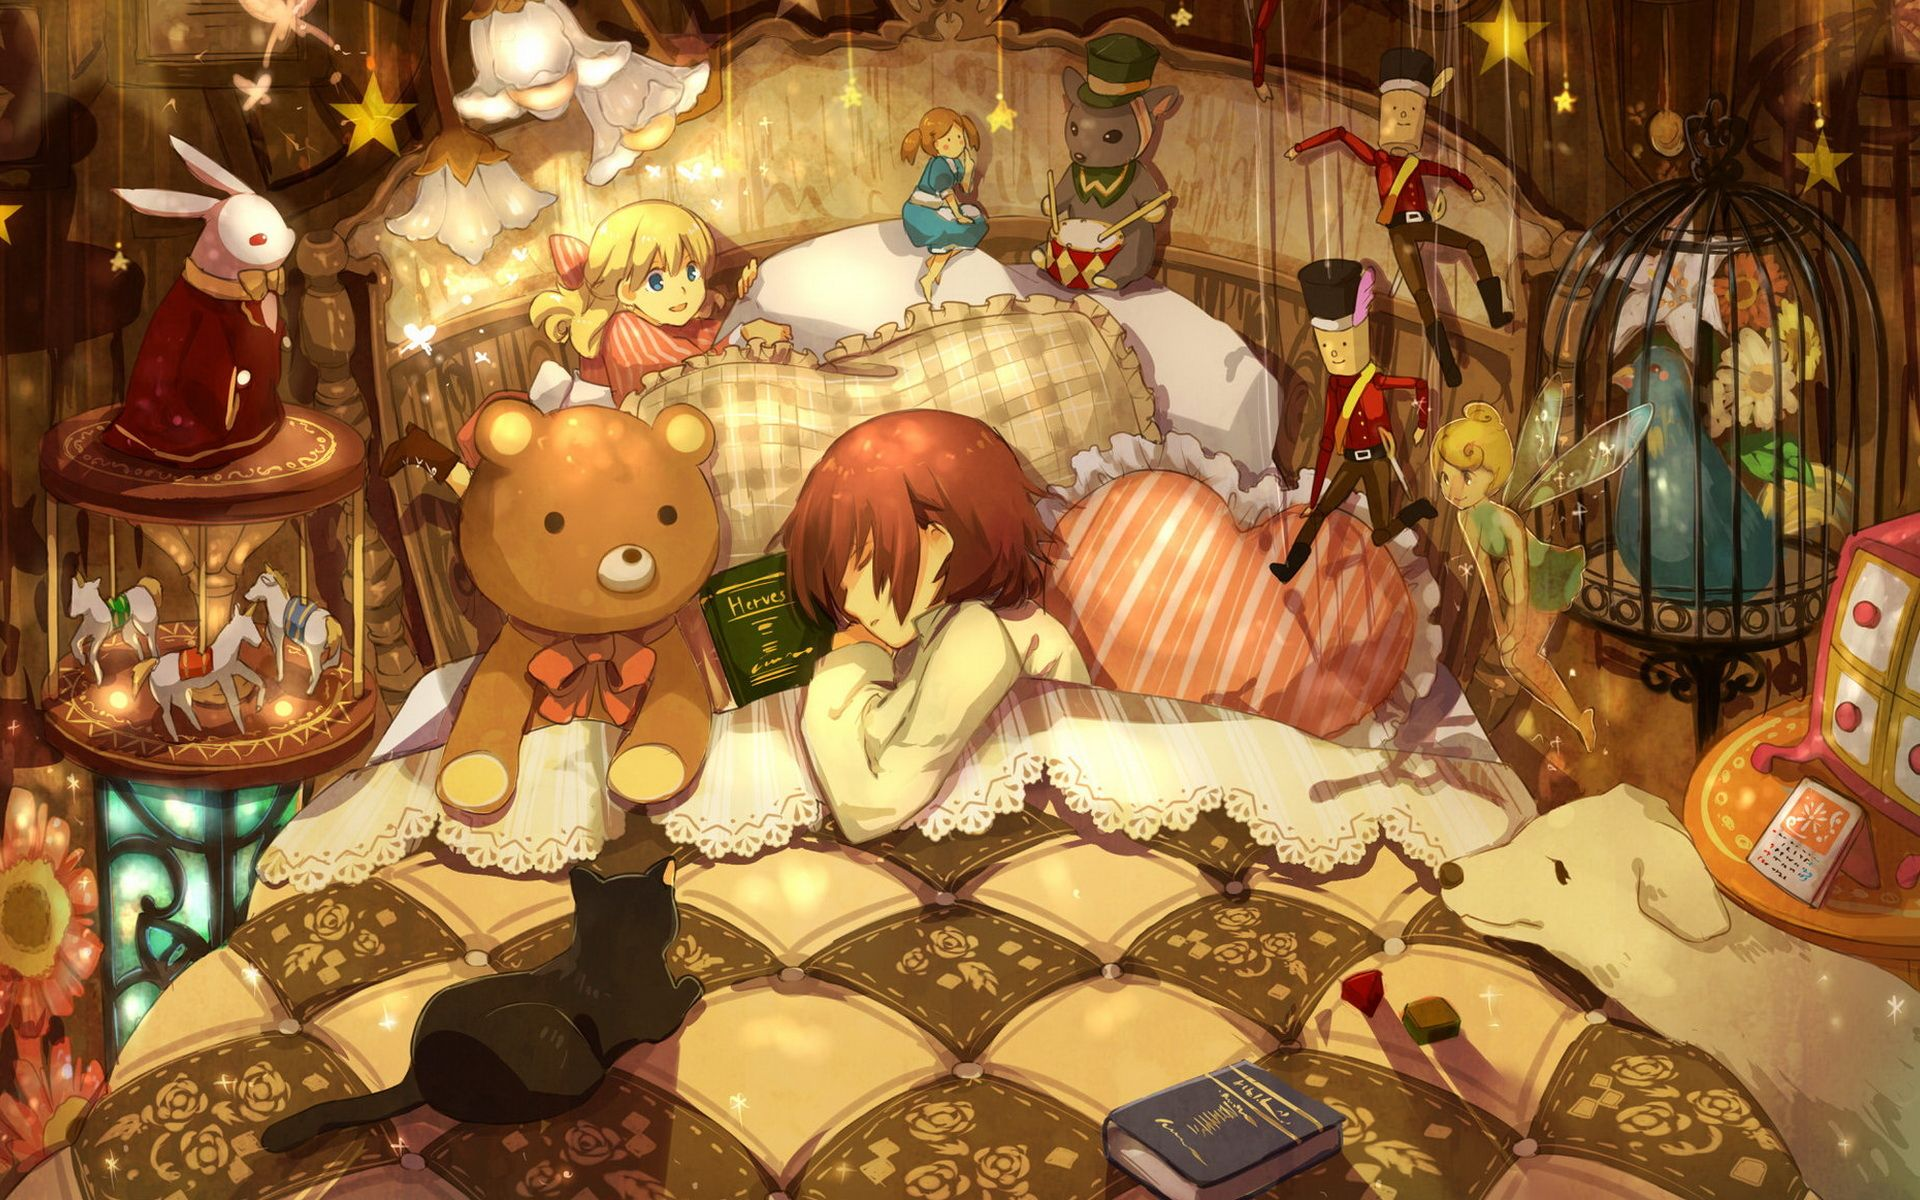 Pin By Moon Cake On Detailed Imaginative Fantastical Illustrations Anime Anime Wallpaper Painting